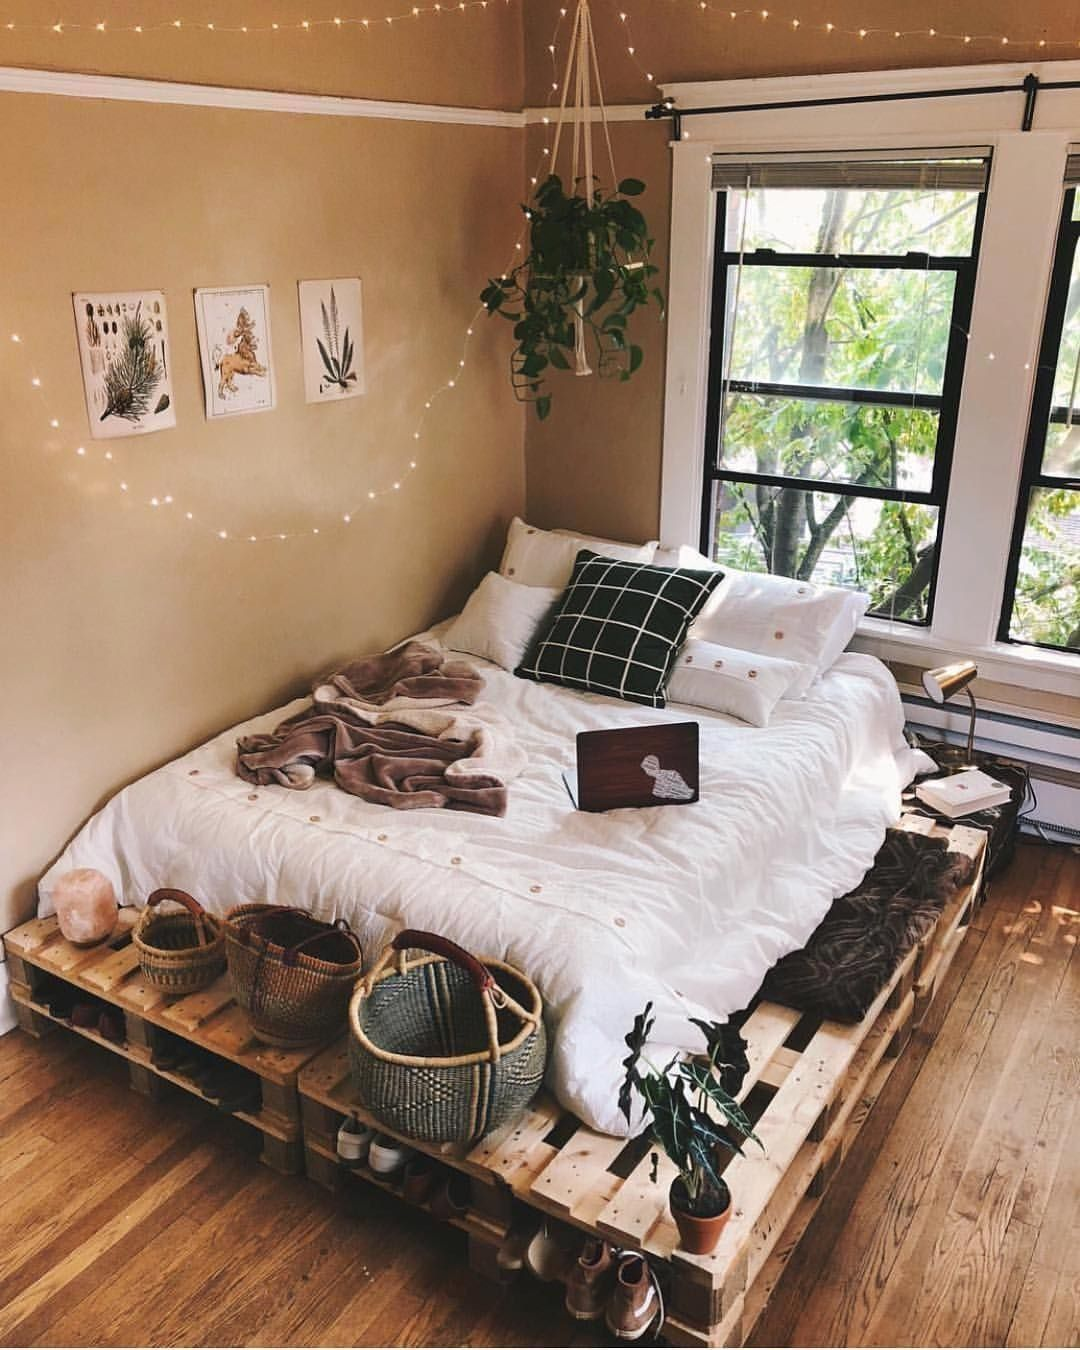 25 Absorbing Rustic Bedroom Concepts (Passions For Sleeping) - 20A